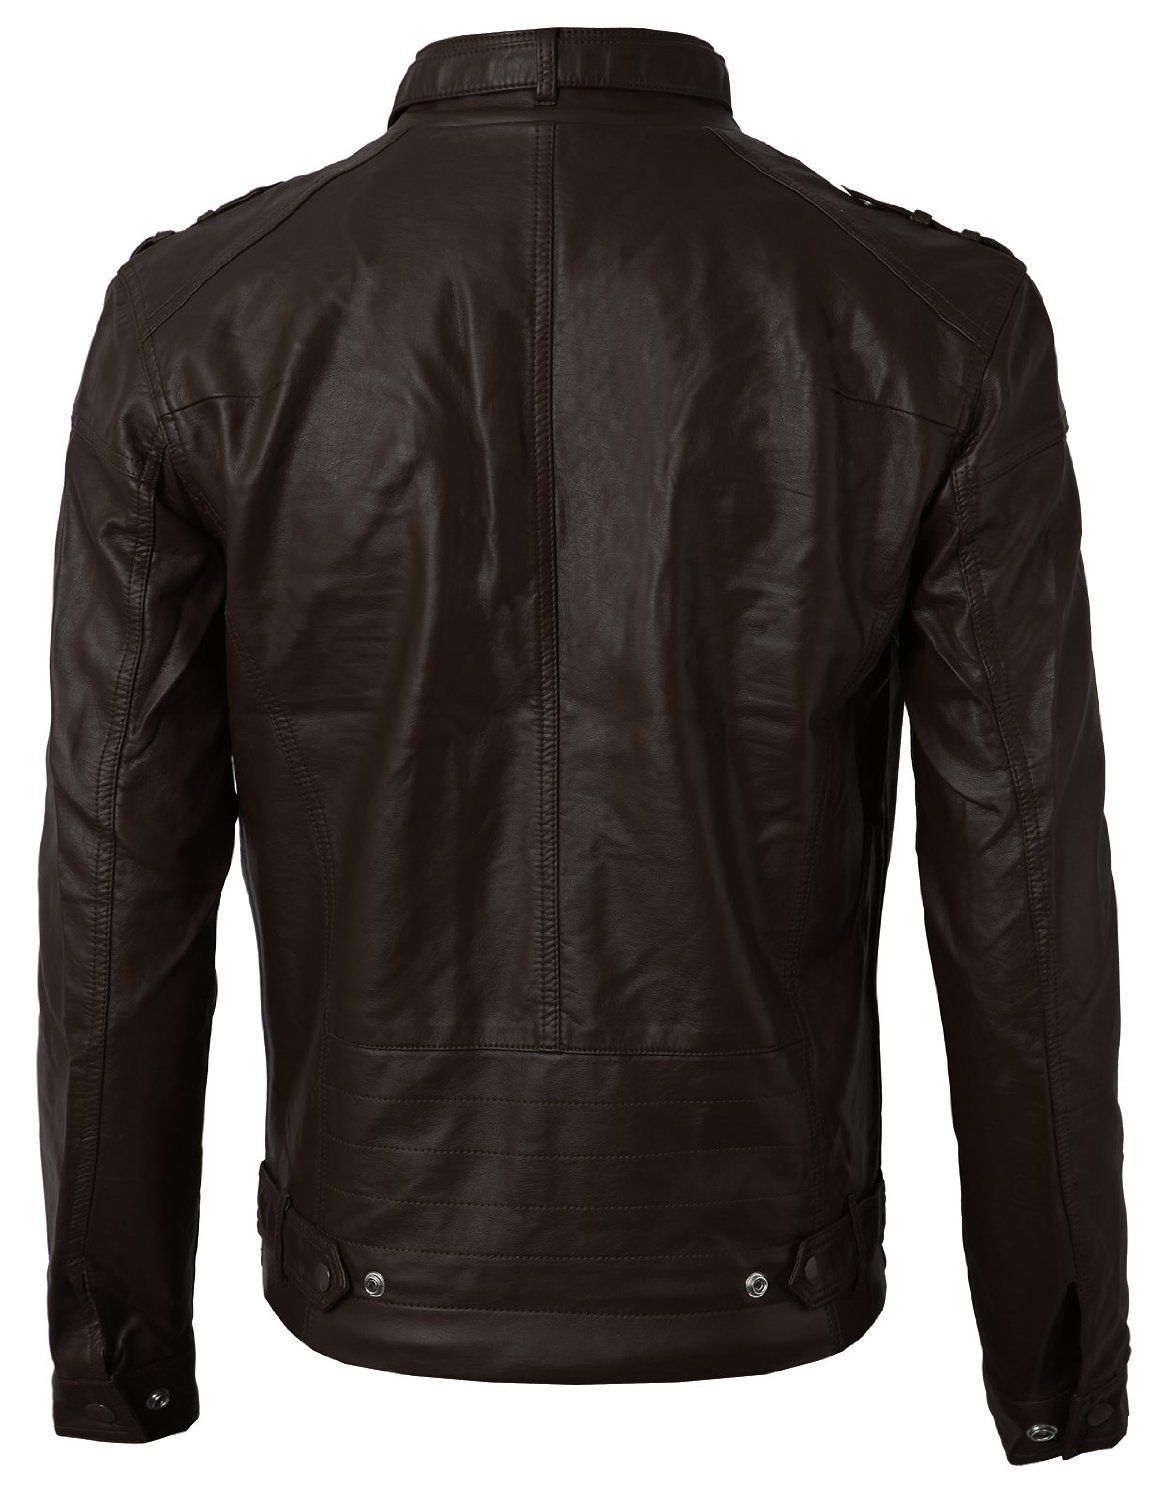 fa663cc41773 Amazon.com: H2H Men's Synthetic Leather Rider Jacket with Zippers At  Pocket: Clothing